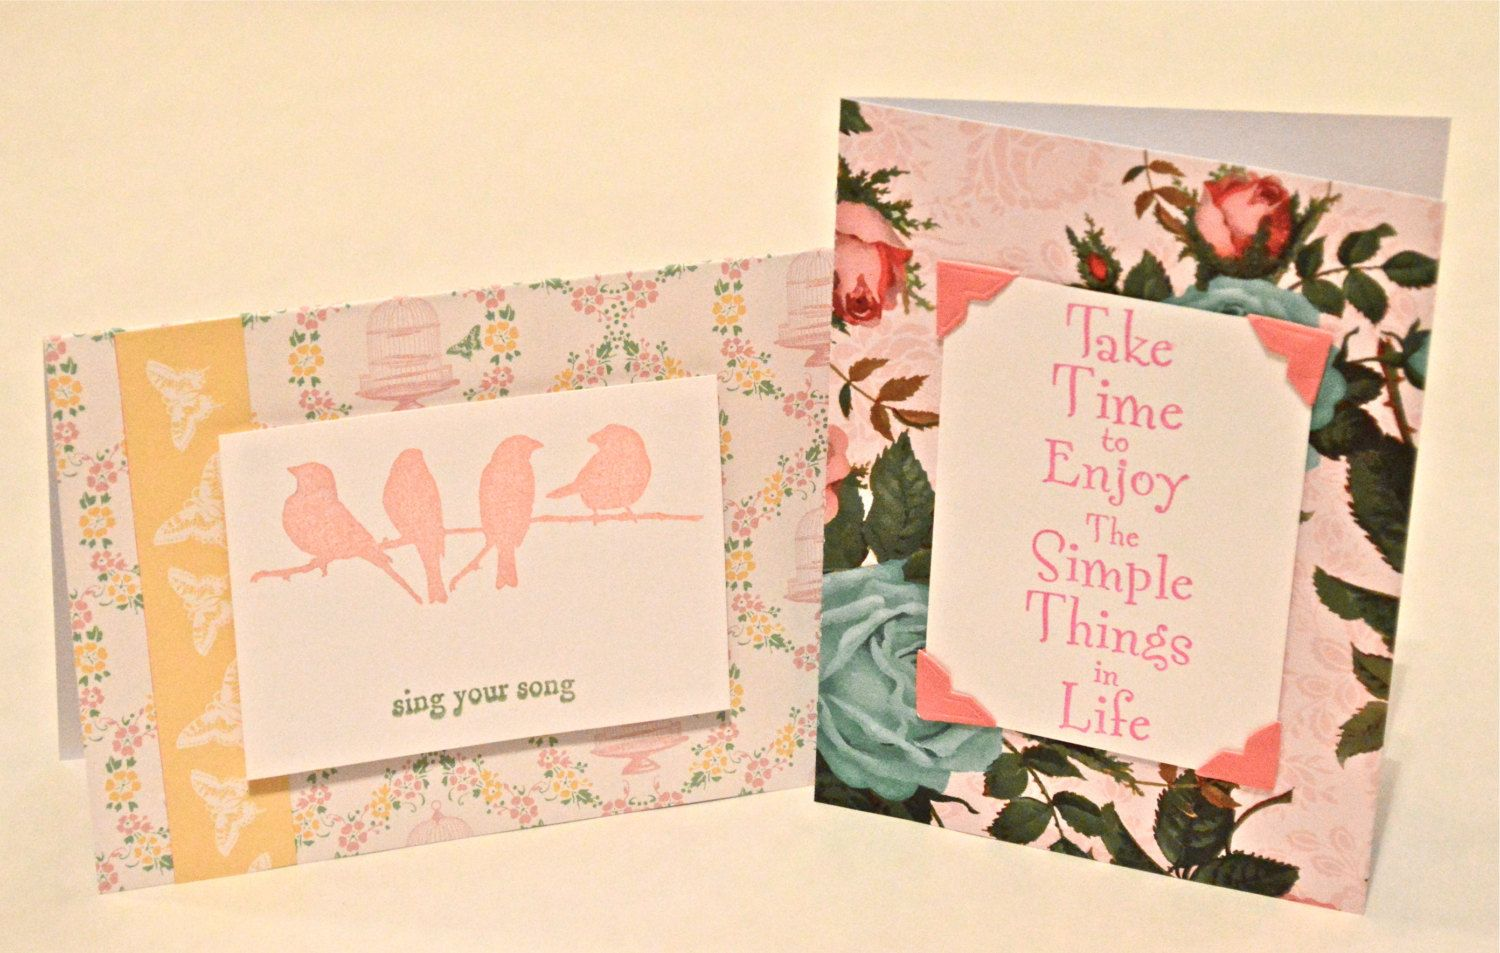 Set of two greeting cards sing your song greeting card take time set of two greeting cards sing your song greeting card take time to enjoy m4hsunfo